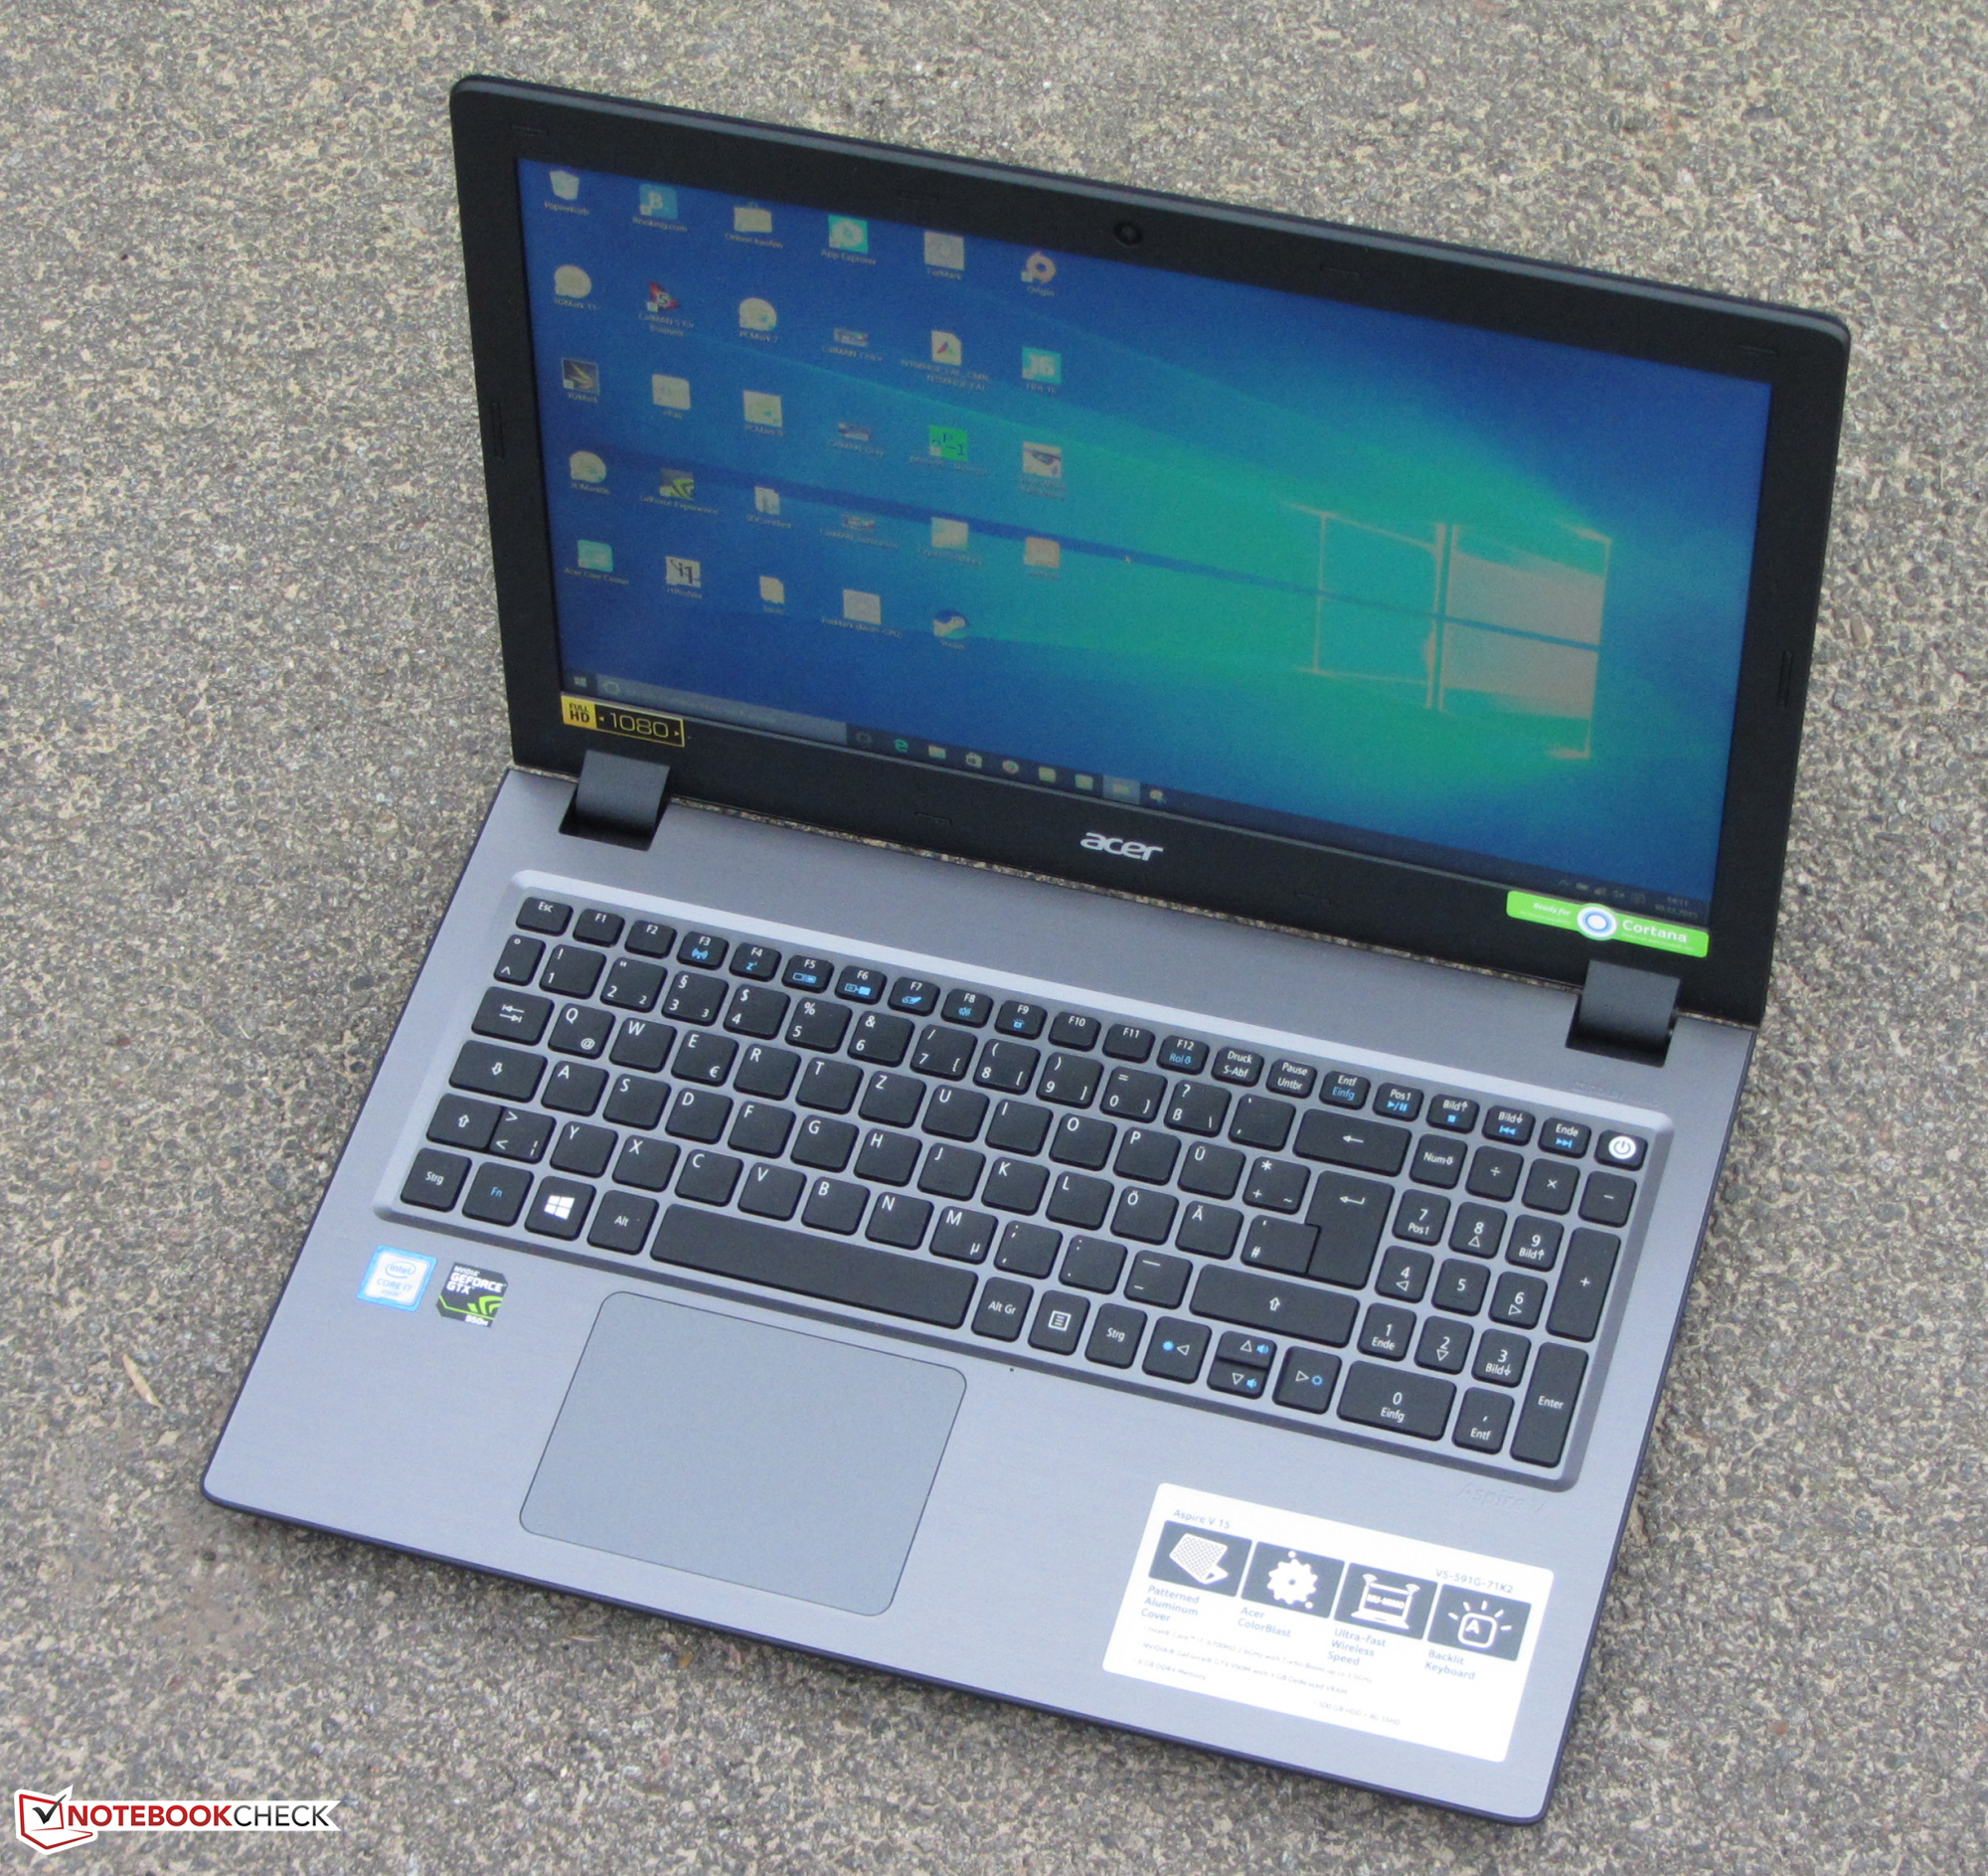 Acer Aspire E5-491G Realtek LAN Windows 8 X64 Treiber